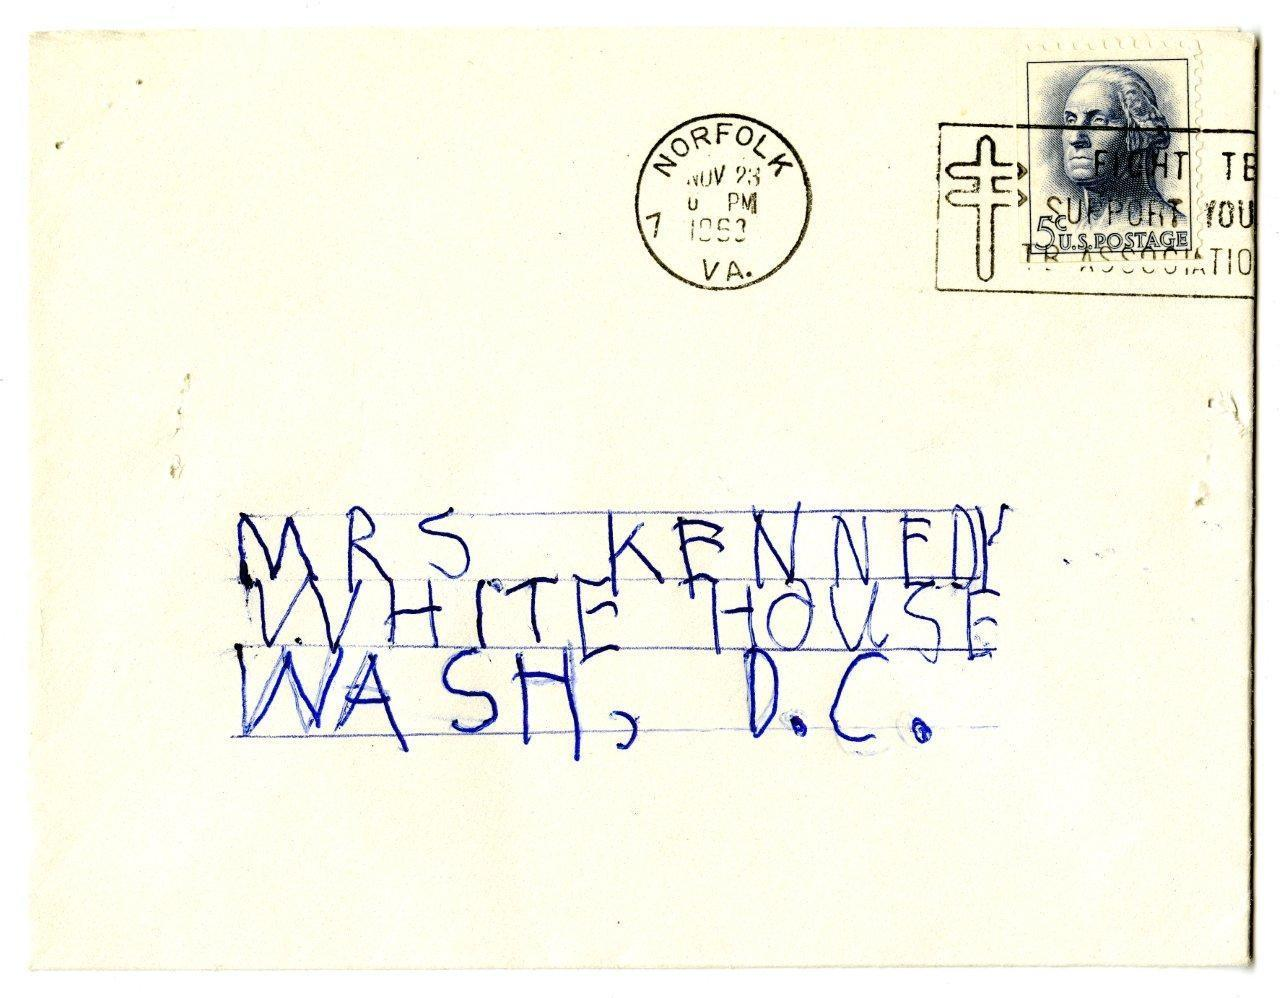 Envelope Addressed to Jacqueline Kennedy, November 23, 1963